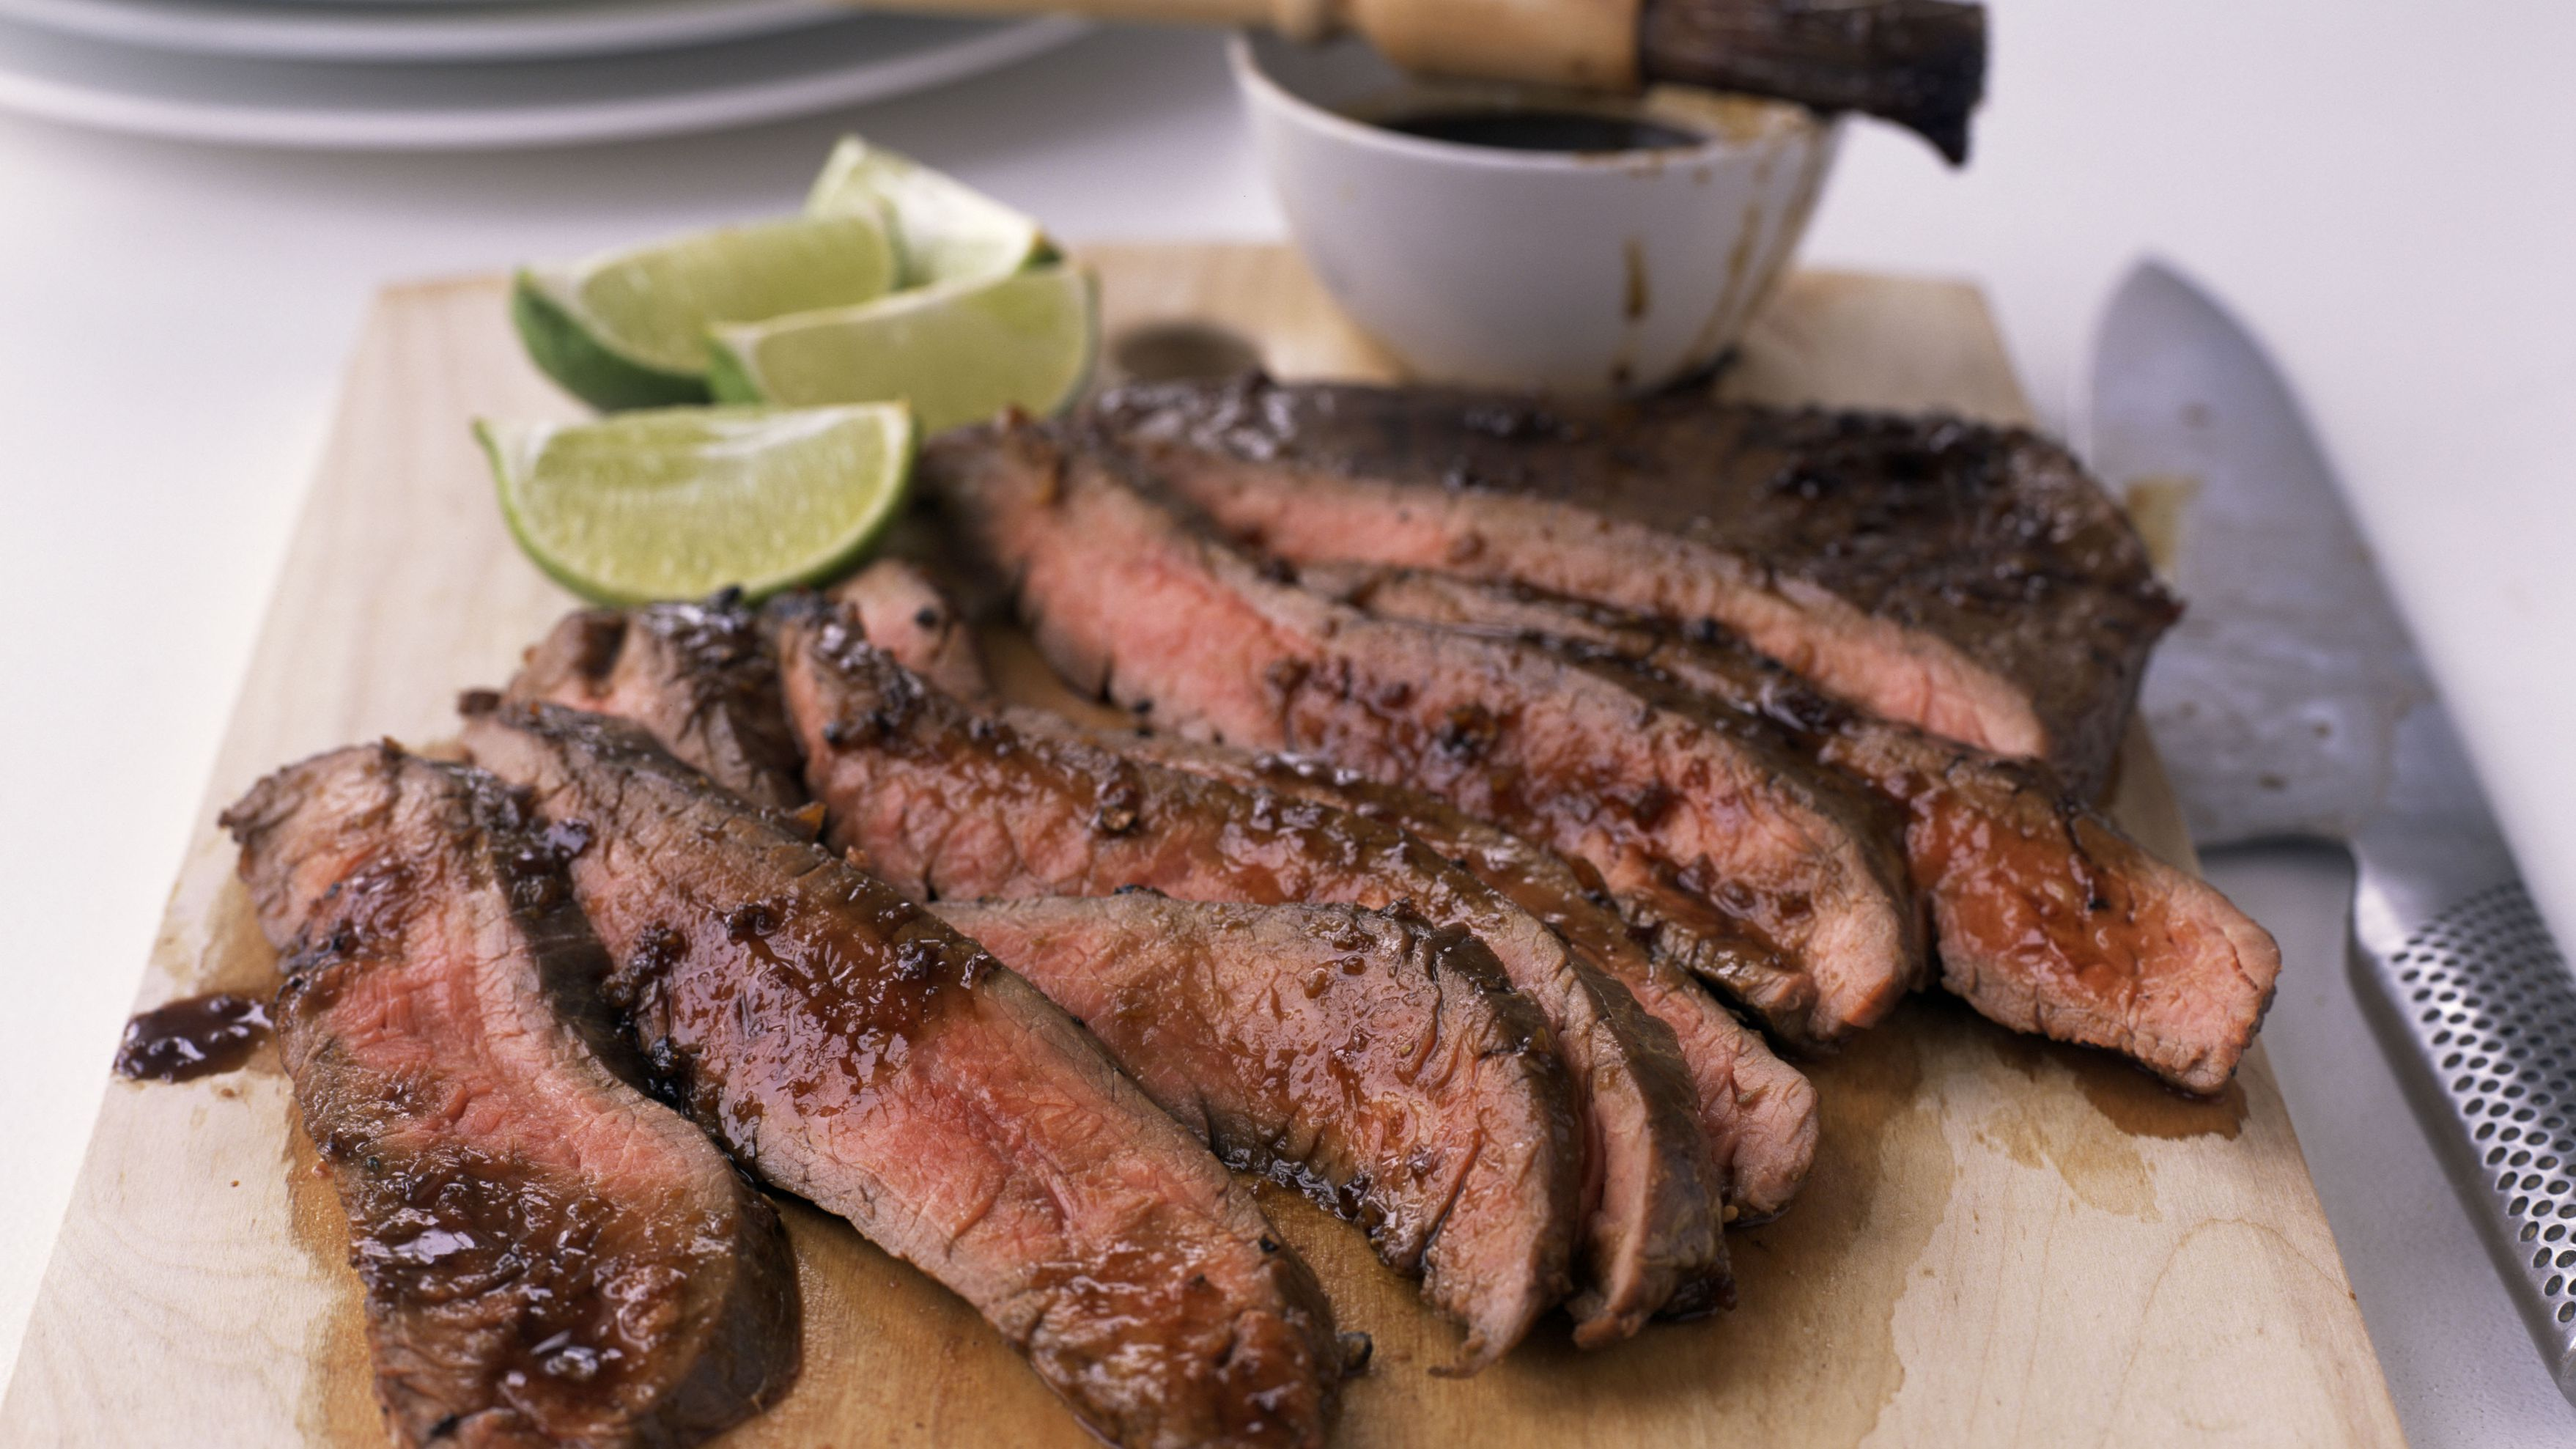 How To Make Your Own Steak Sauce Recipe